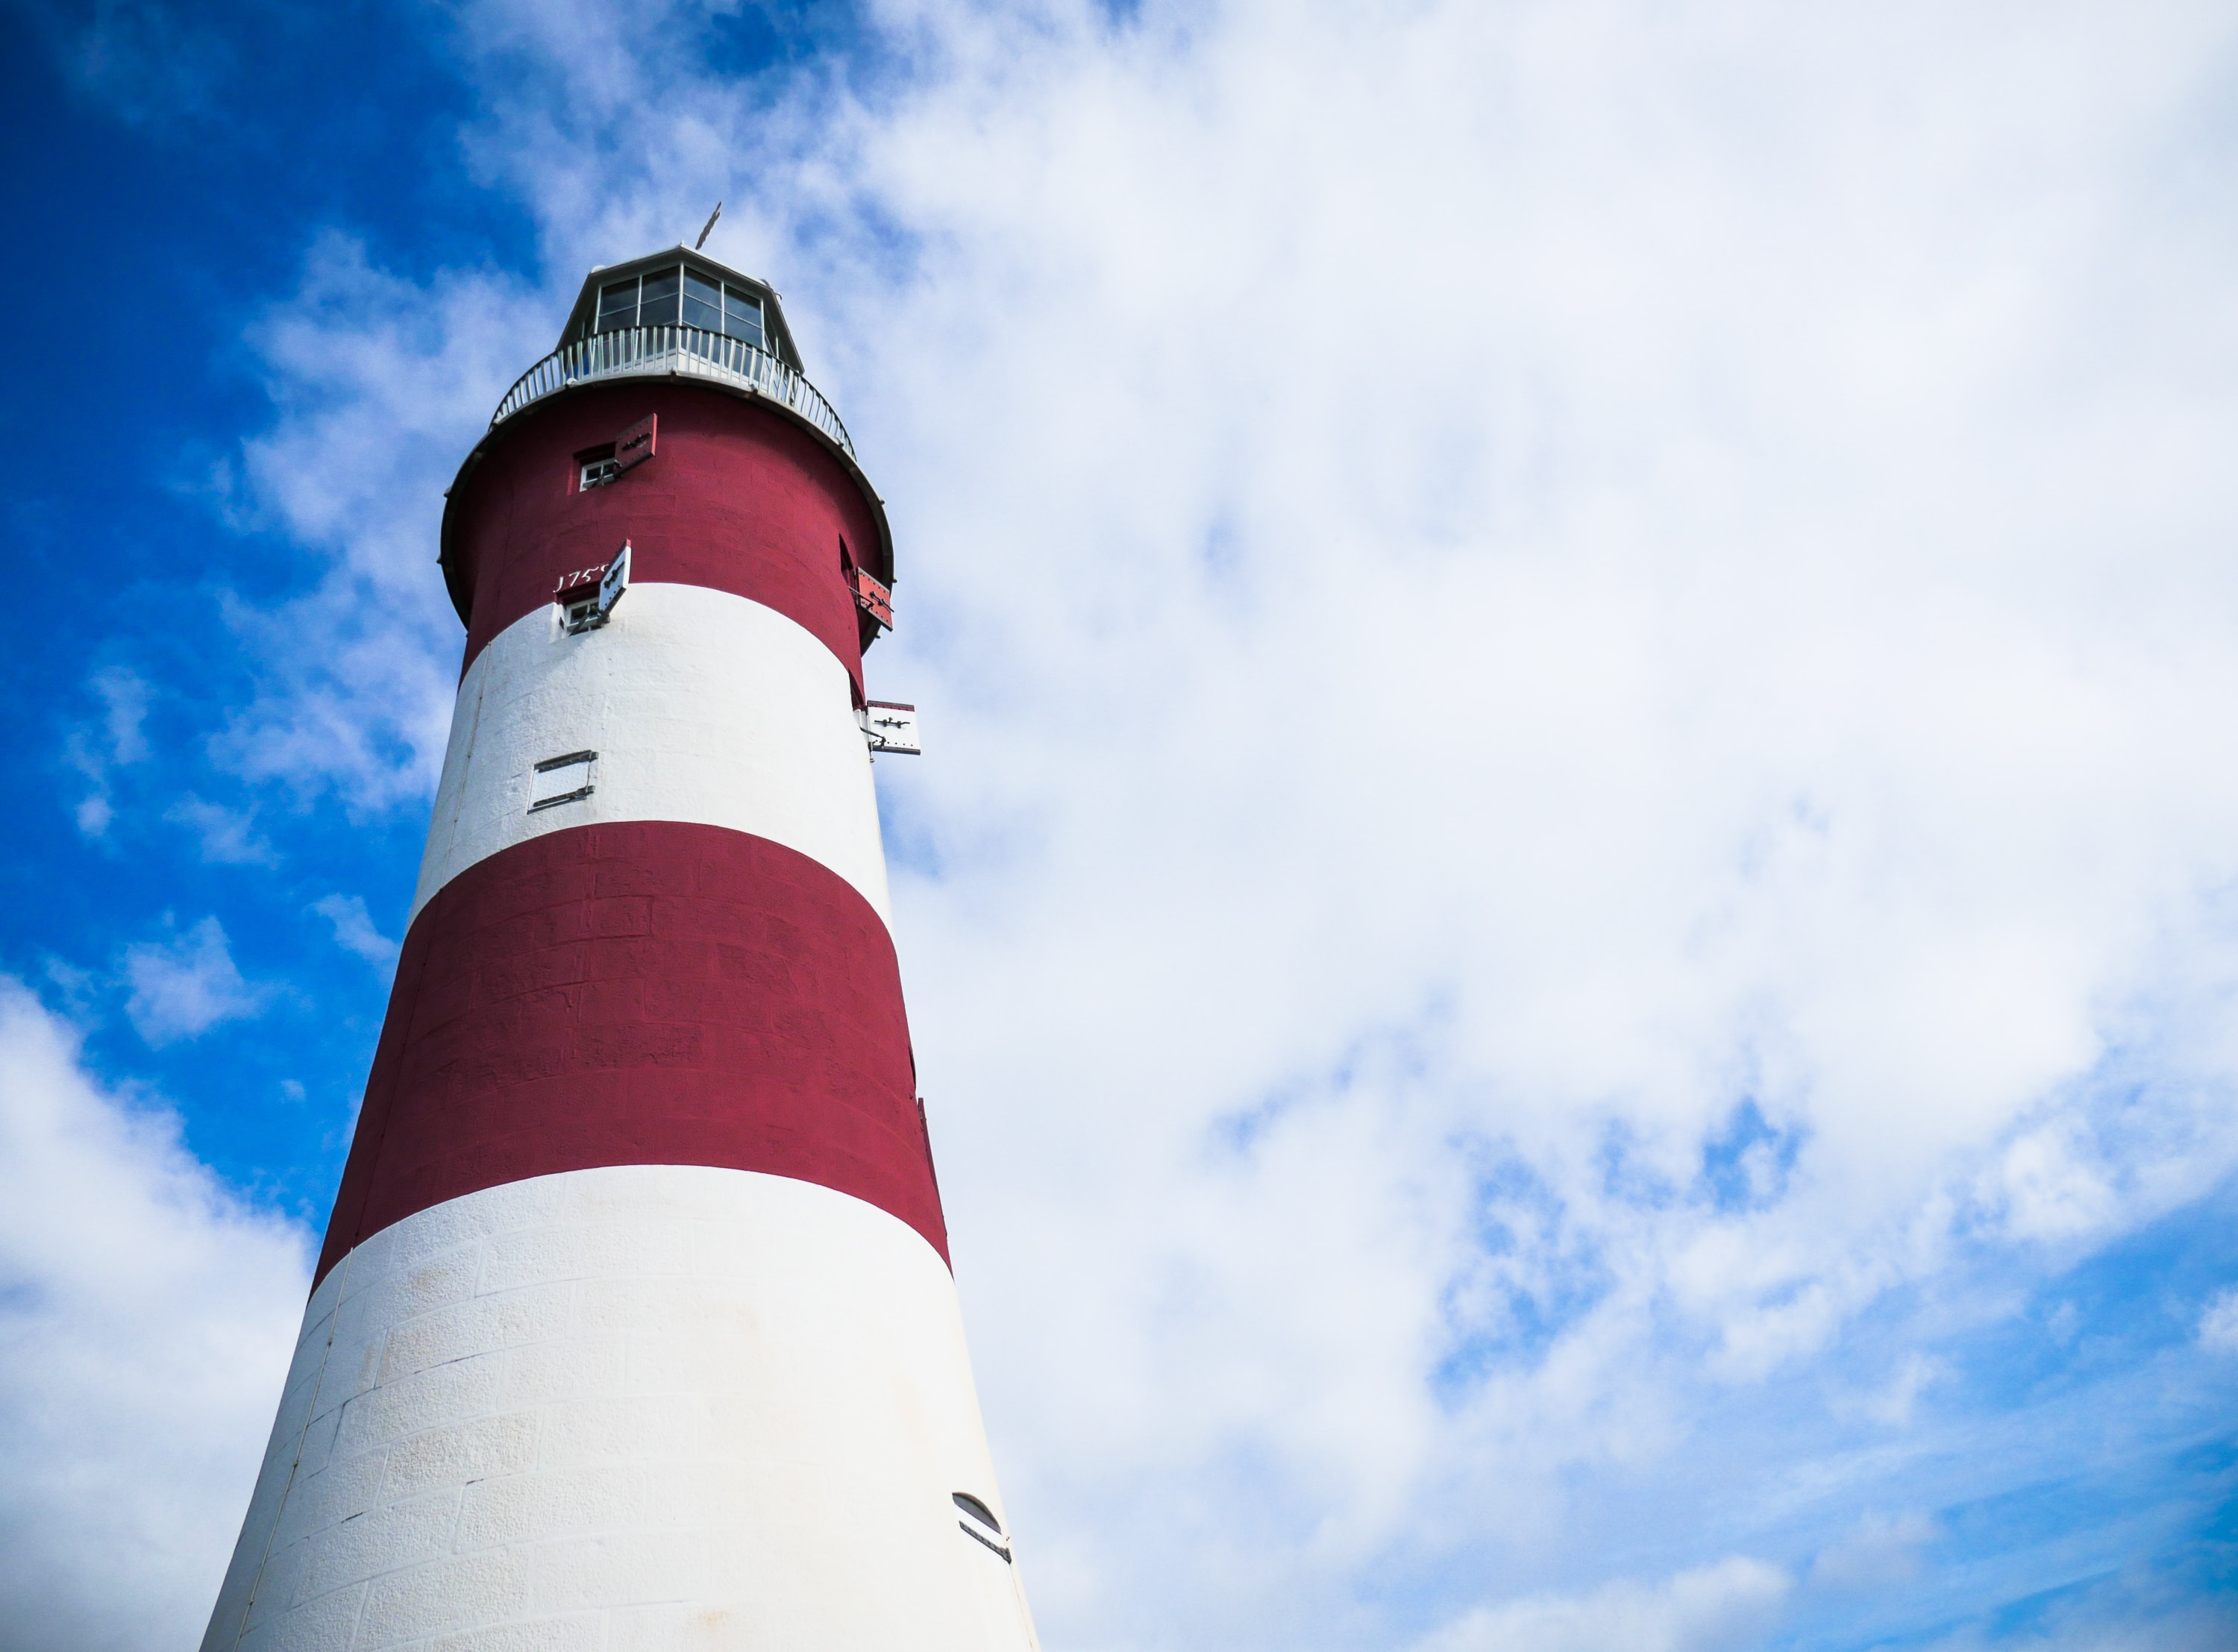 red and white lighthouse under cloudy blue sky